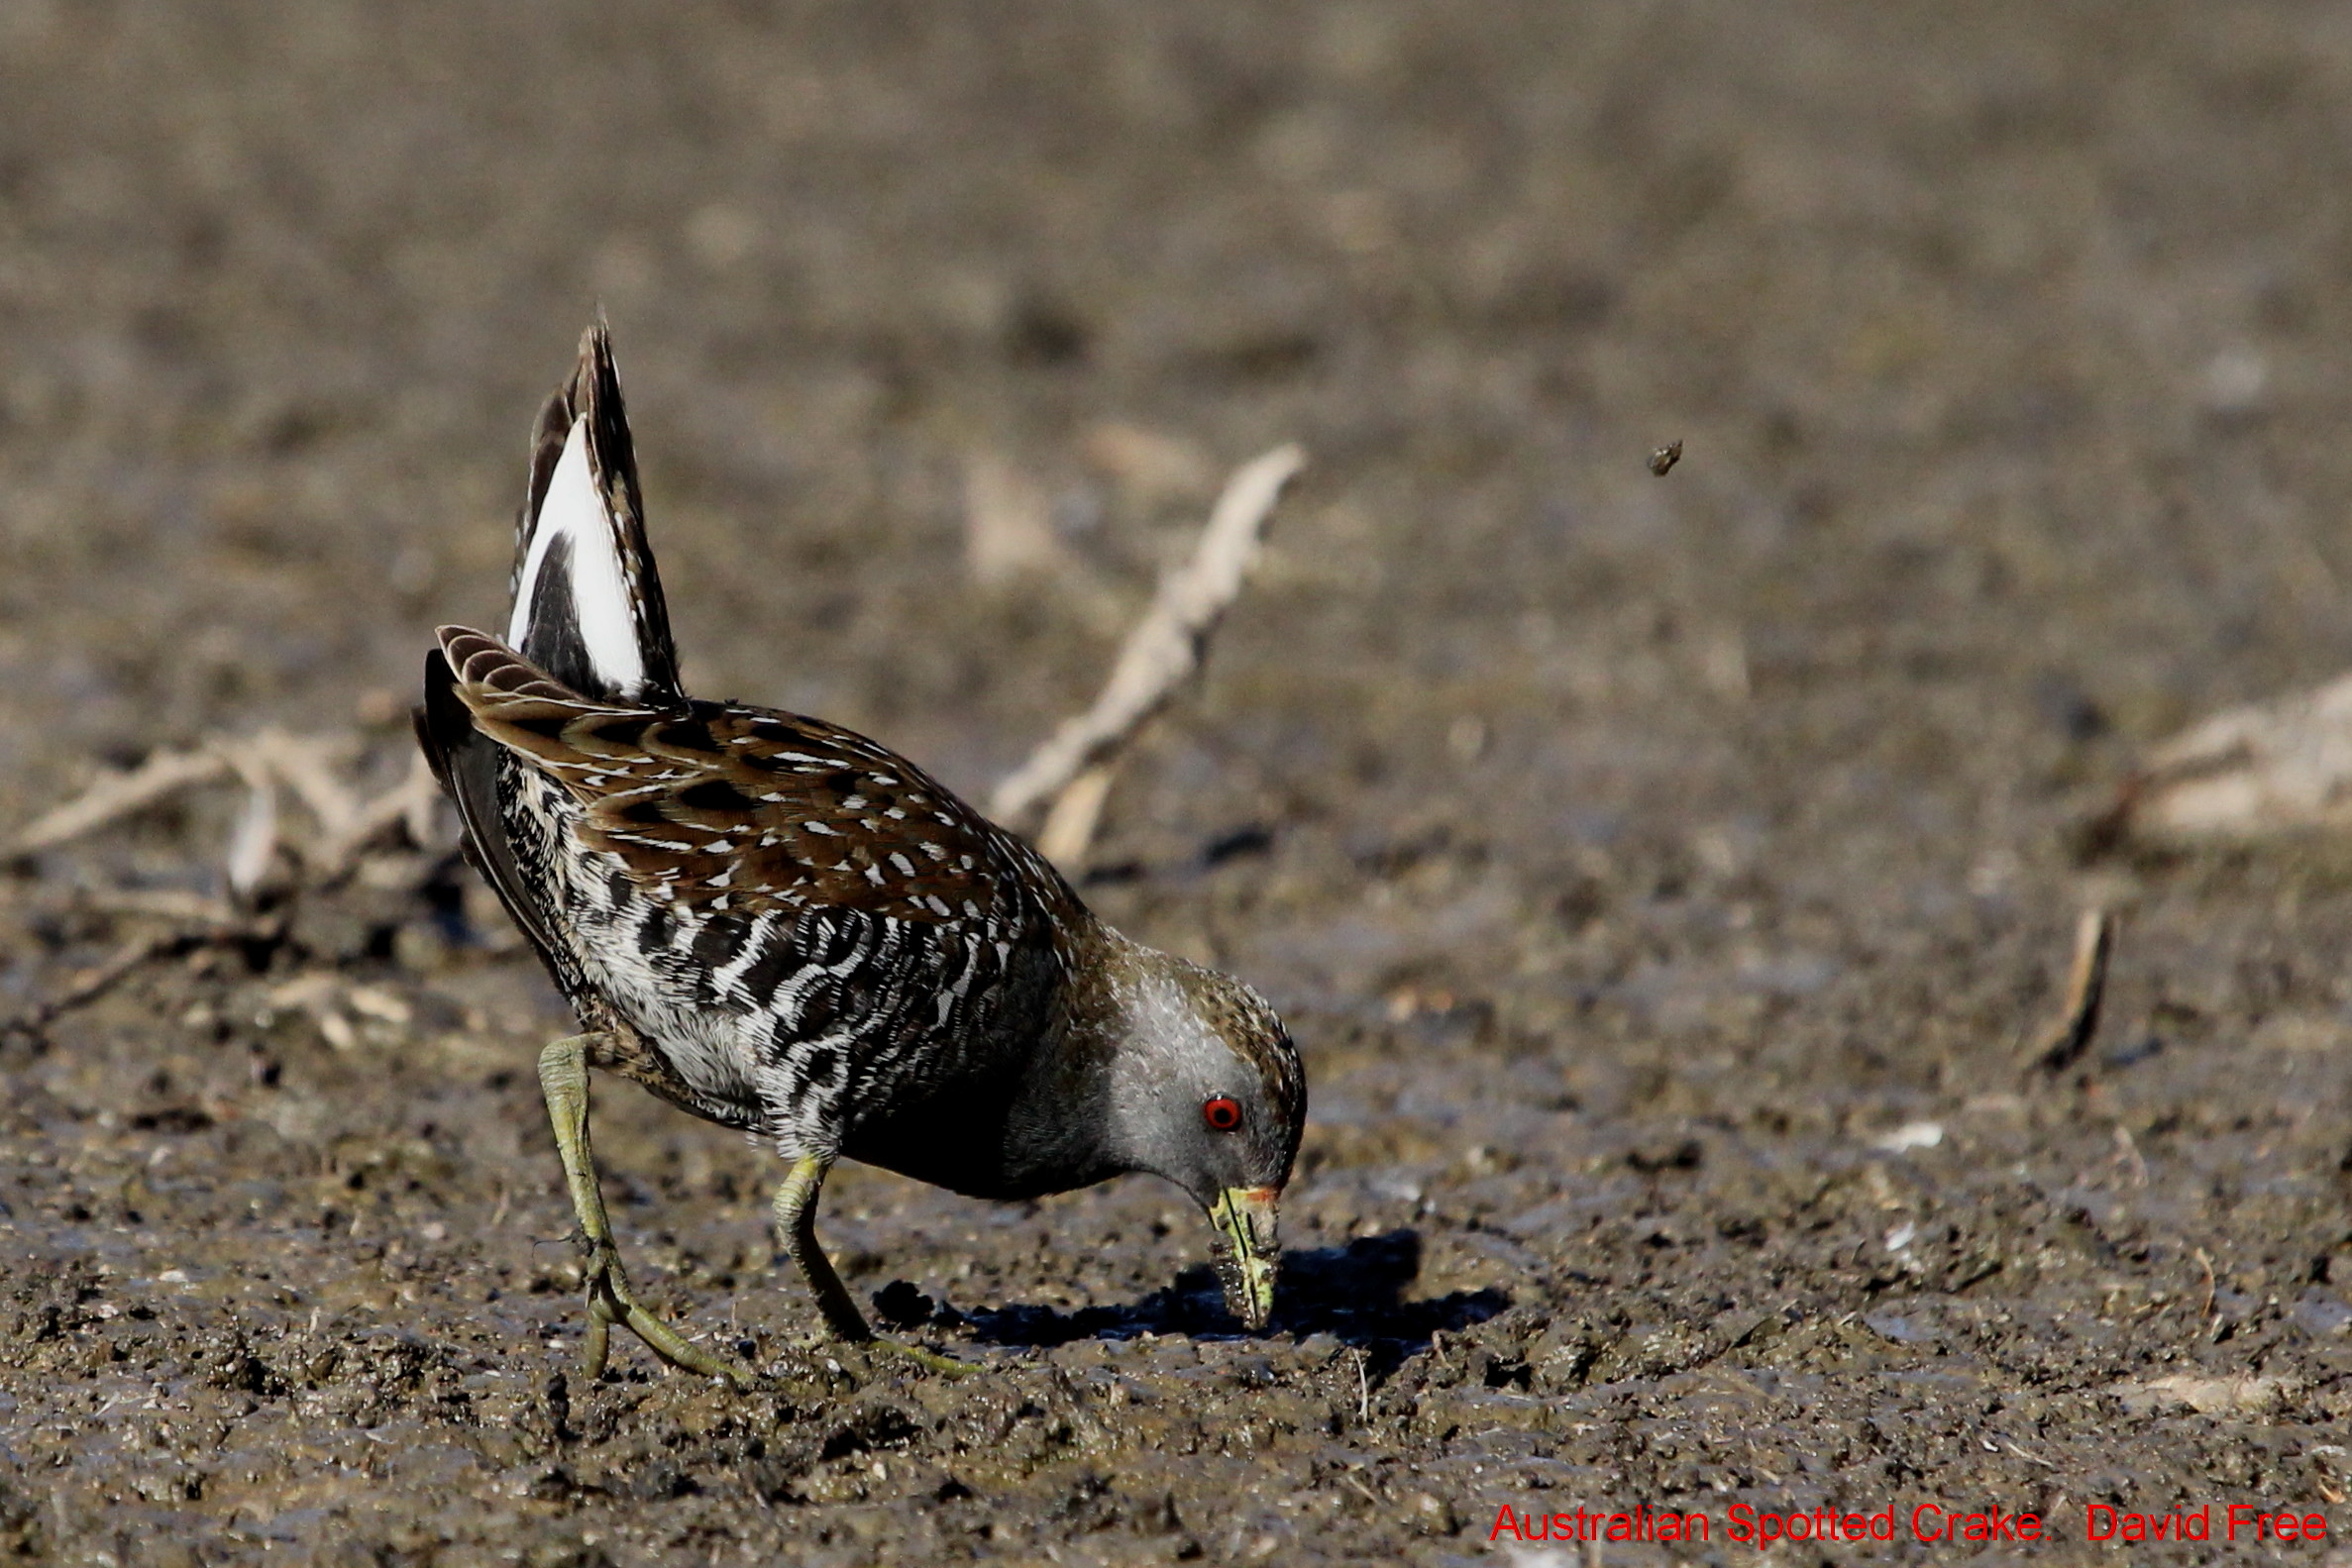 Australian Spotted Crake – Friends of Lake Claremont